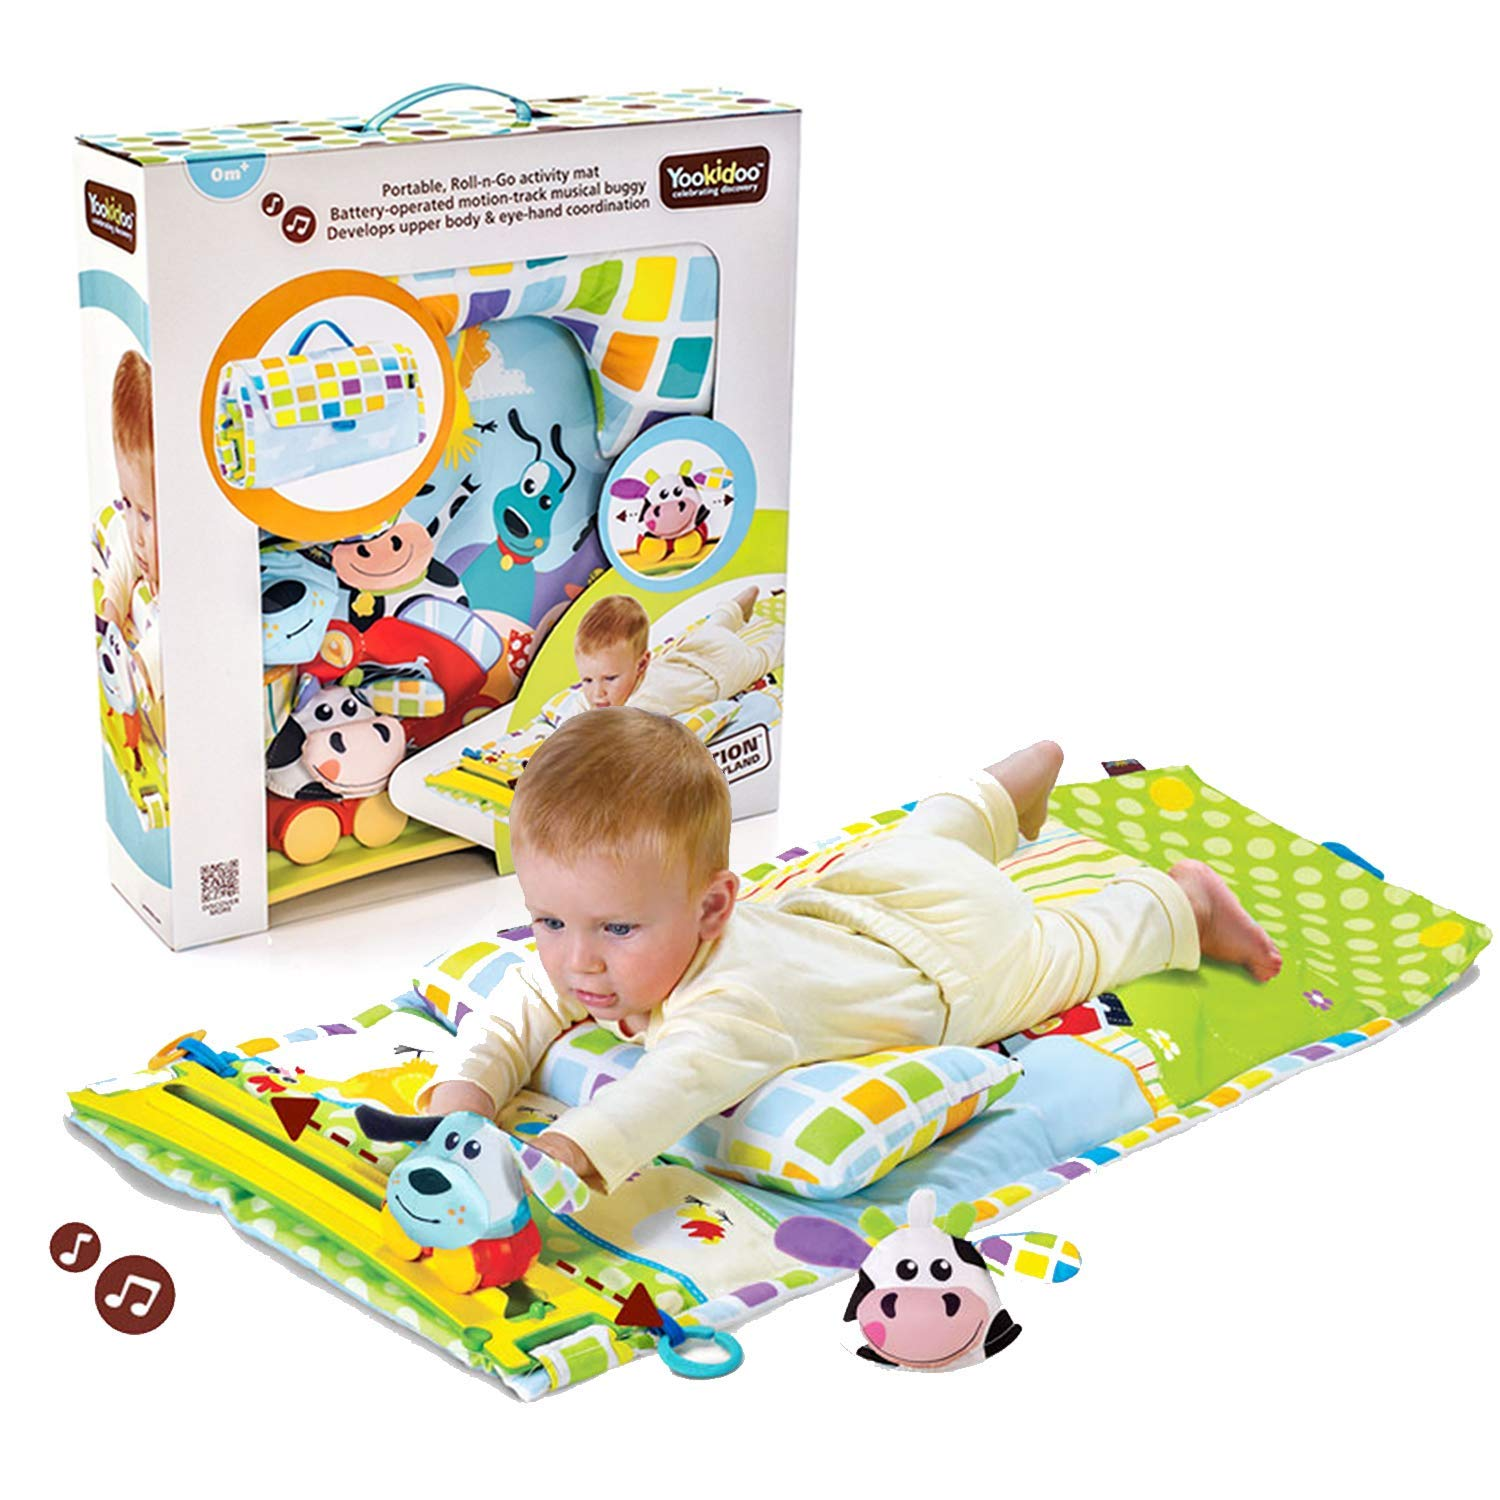 Tummy Time Mat by Yookidoo - Baby Gym & Activity Musical Playmat. Infant Pillow, 2 Newborn Plush Toys (Dog & Cow) and Motorized Magic Motion Track. Comes with Portable Fold-Up Case. From 0+ months